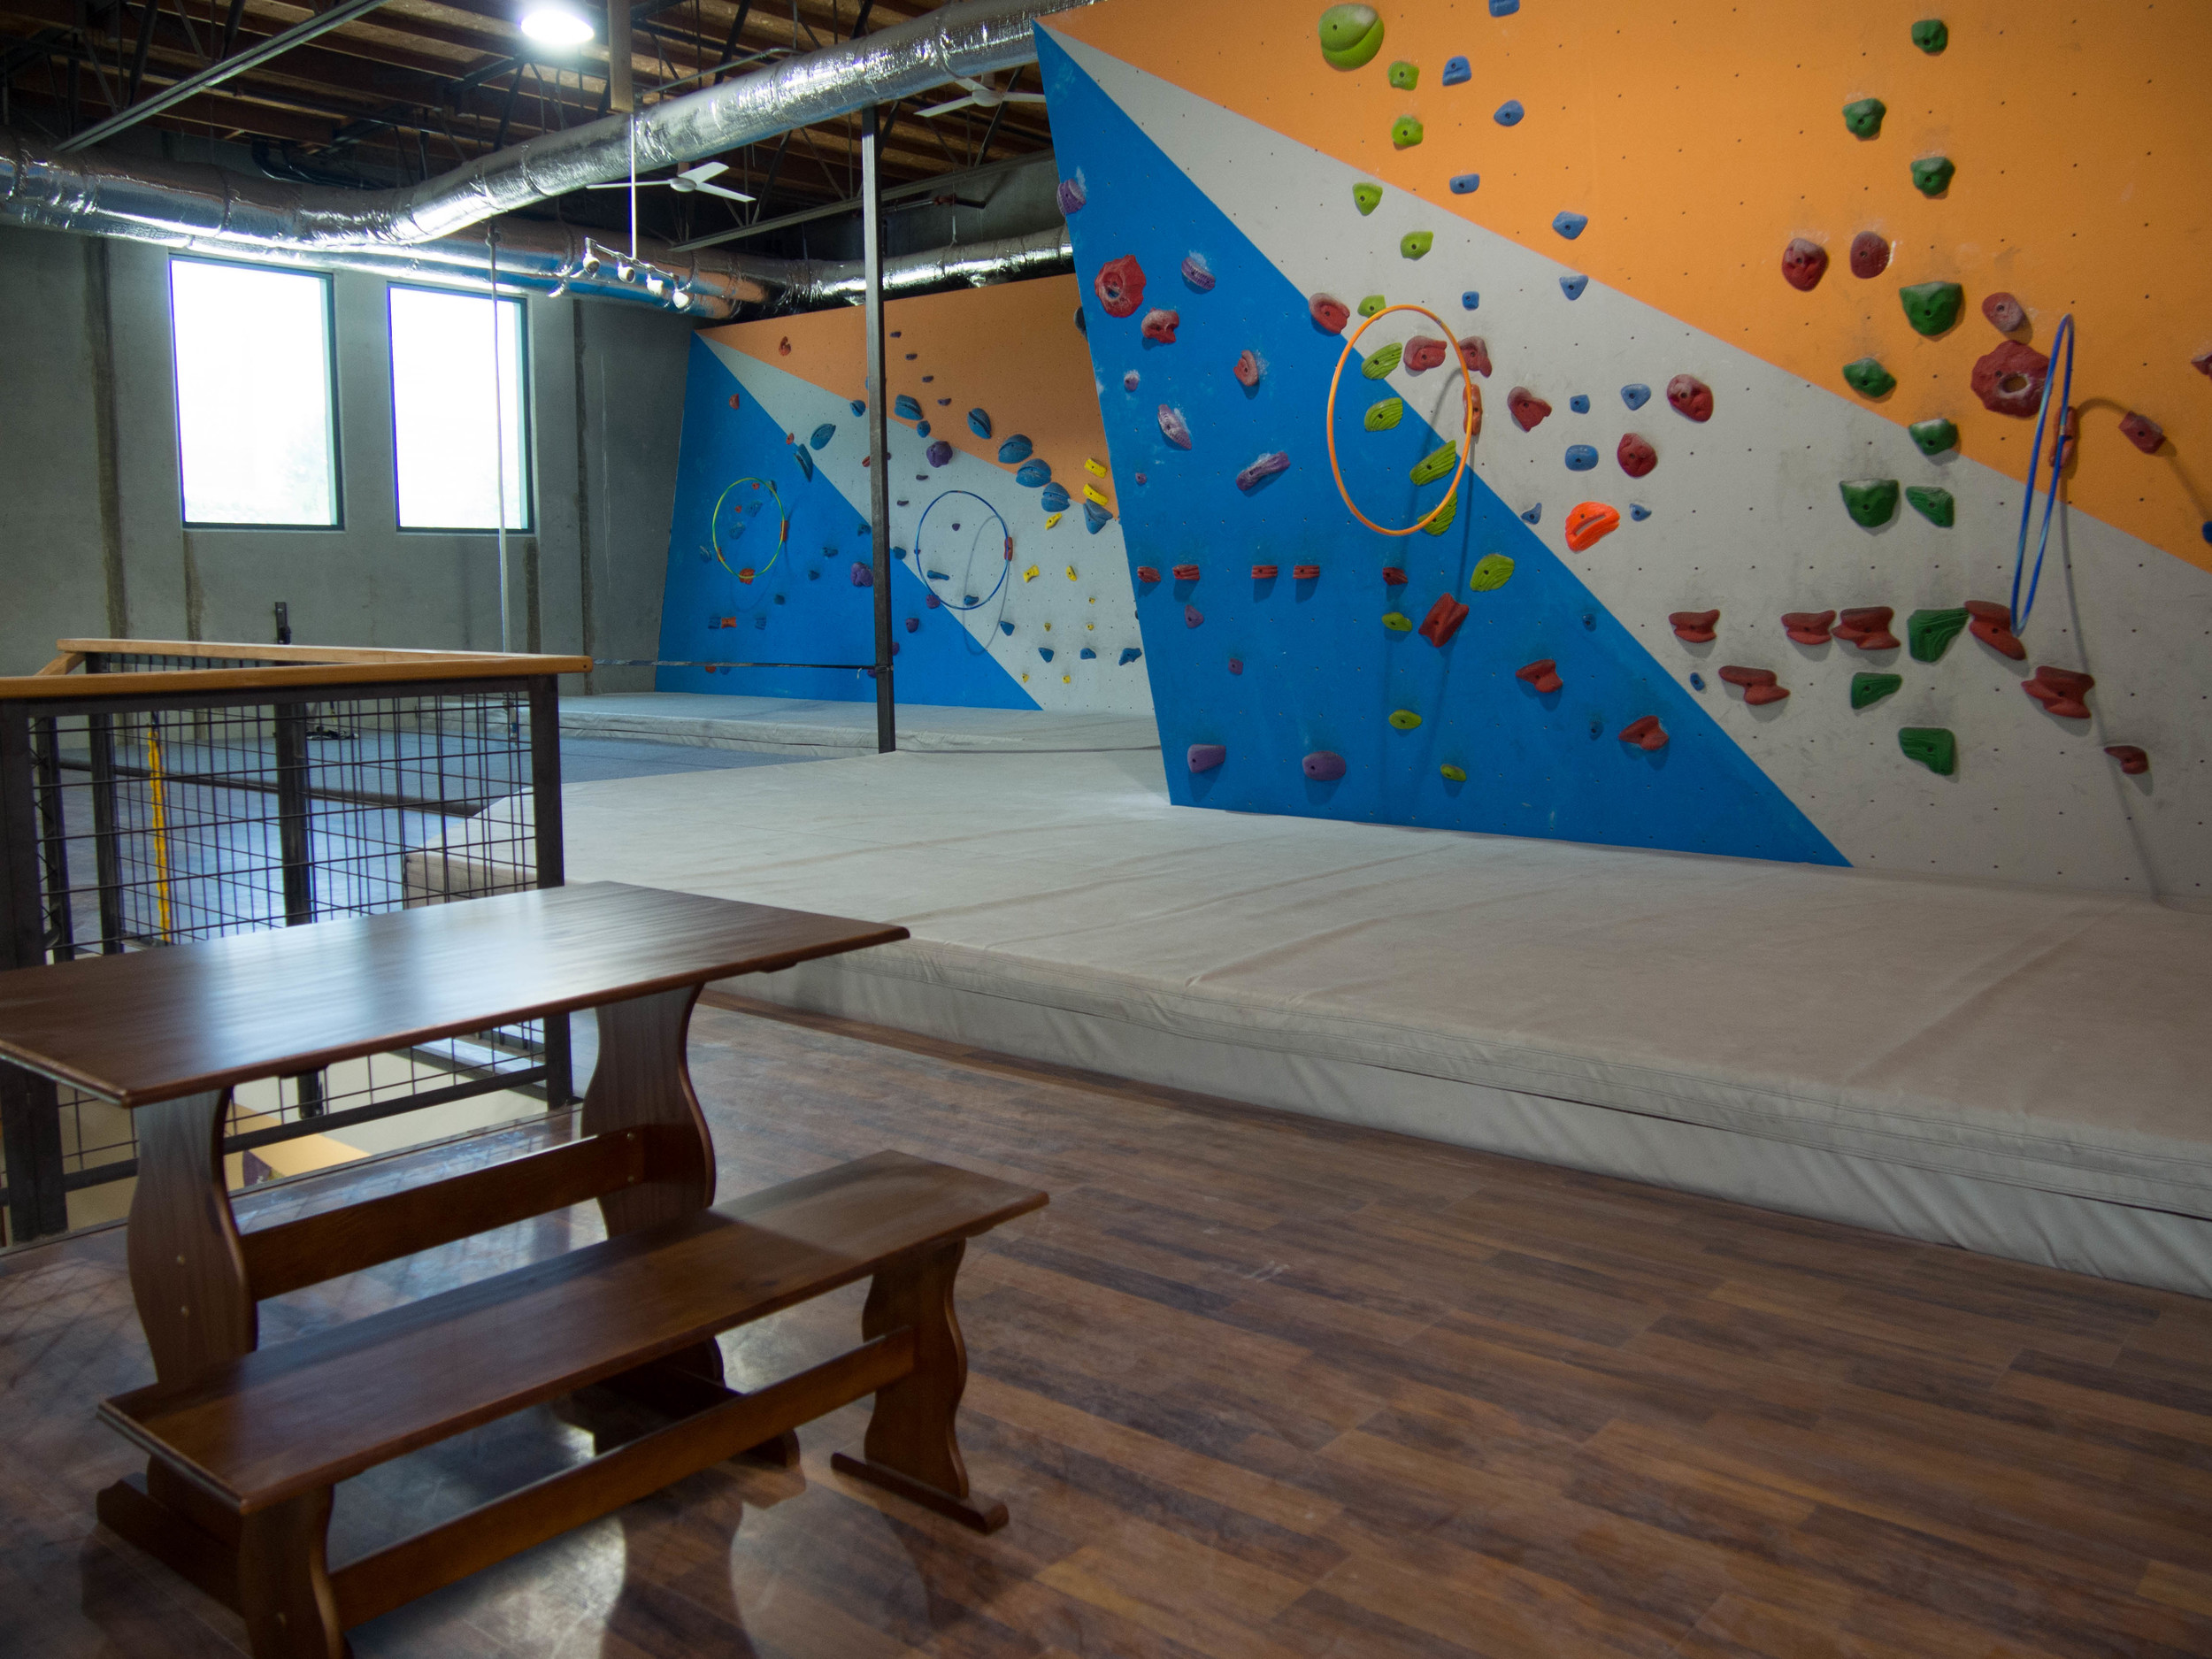 Bouldering Instructional Area – The Wall